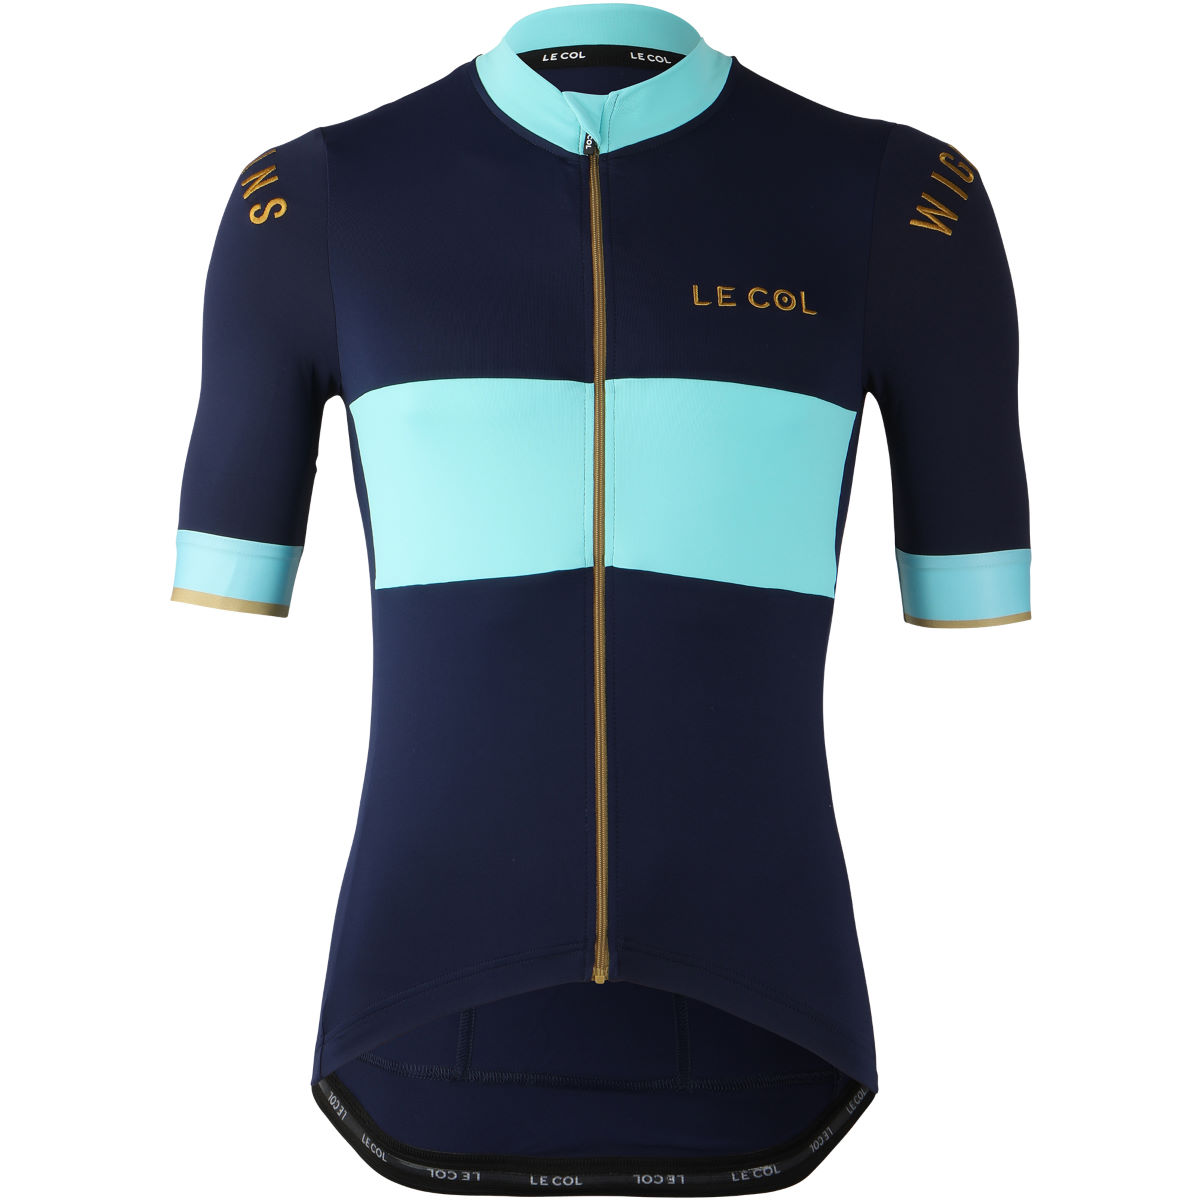 Le Col Le Col By Wiggins Hors Categorie jersey (Exclusive)   Jerseys